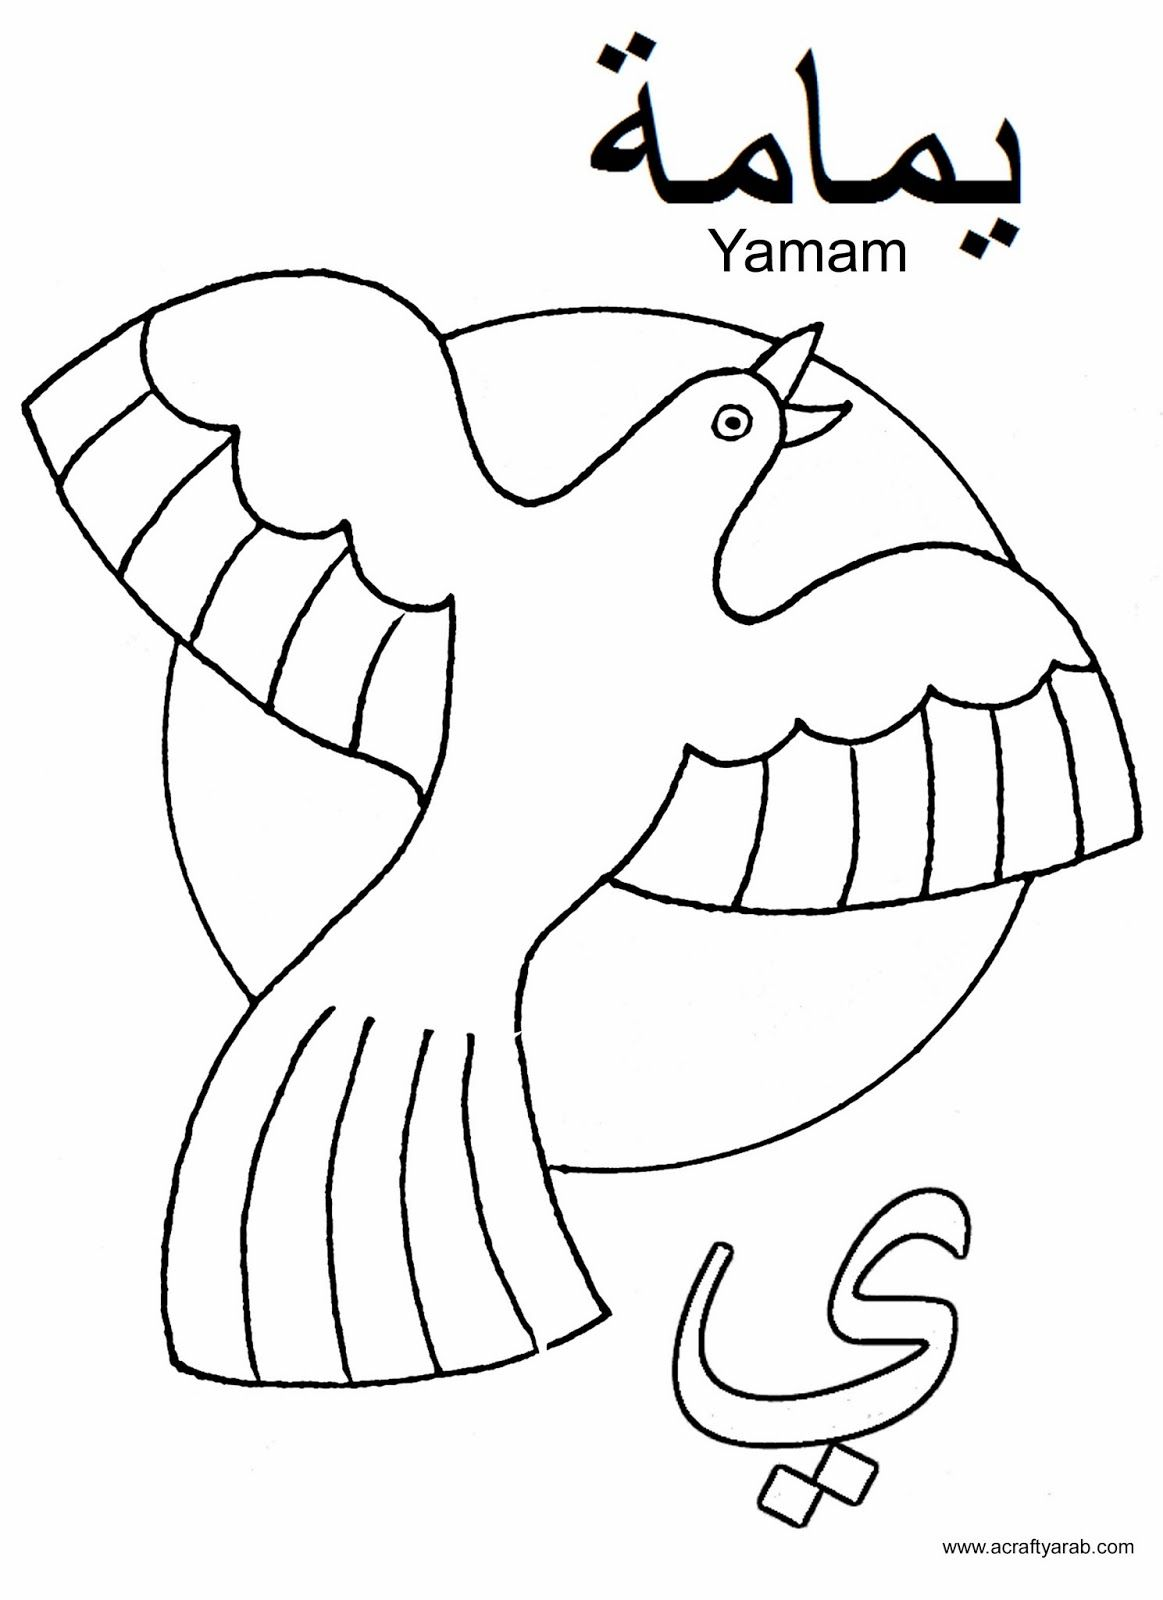 a crafty arab arabic alphabet coloring pages ya is for yamam islamic crafts learn arabic. Black Bedroom Furniture Sets. Home Design Ideas